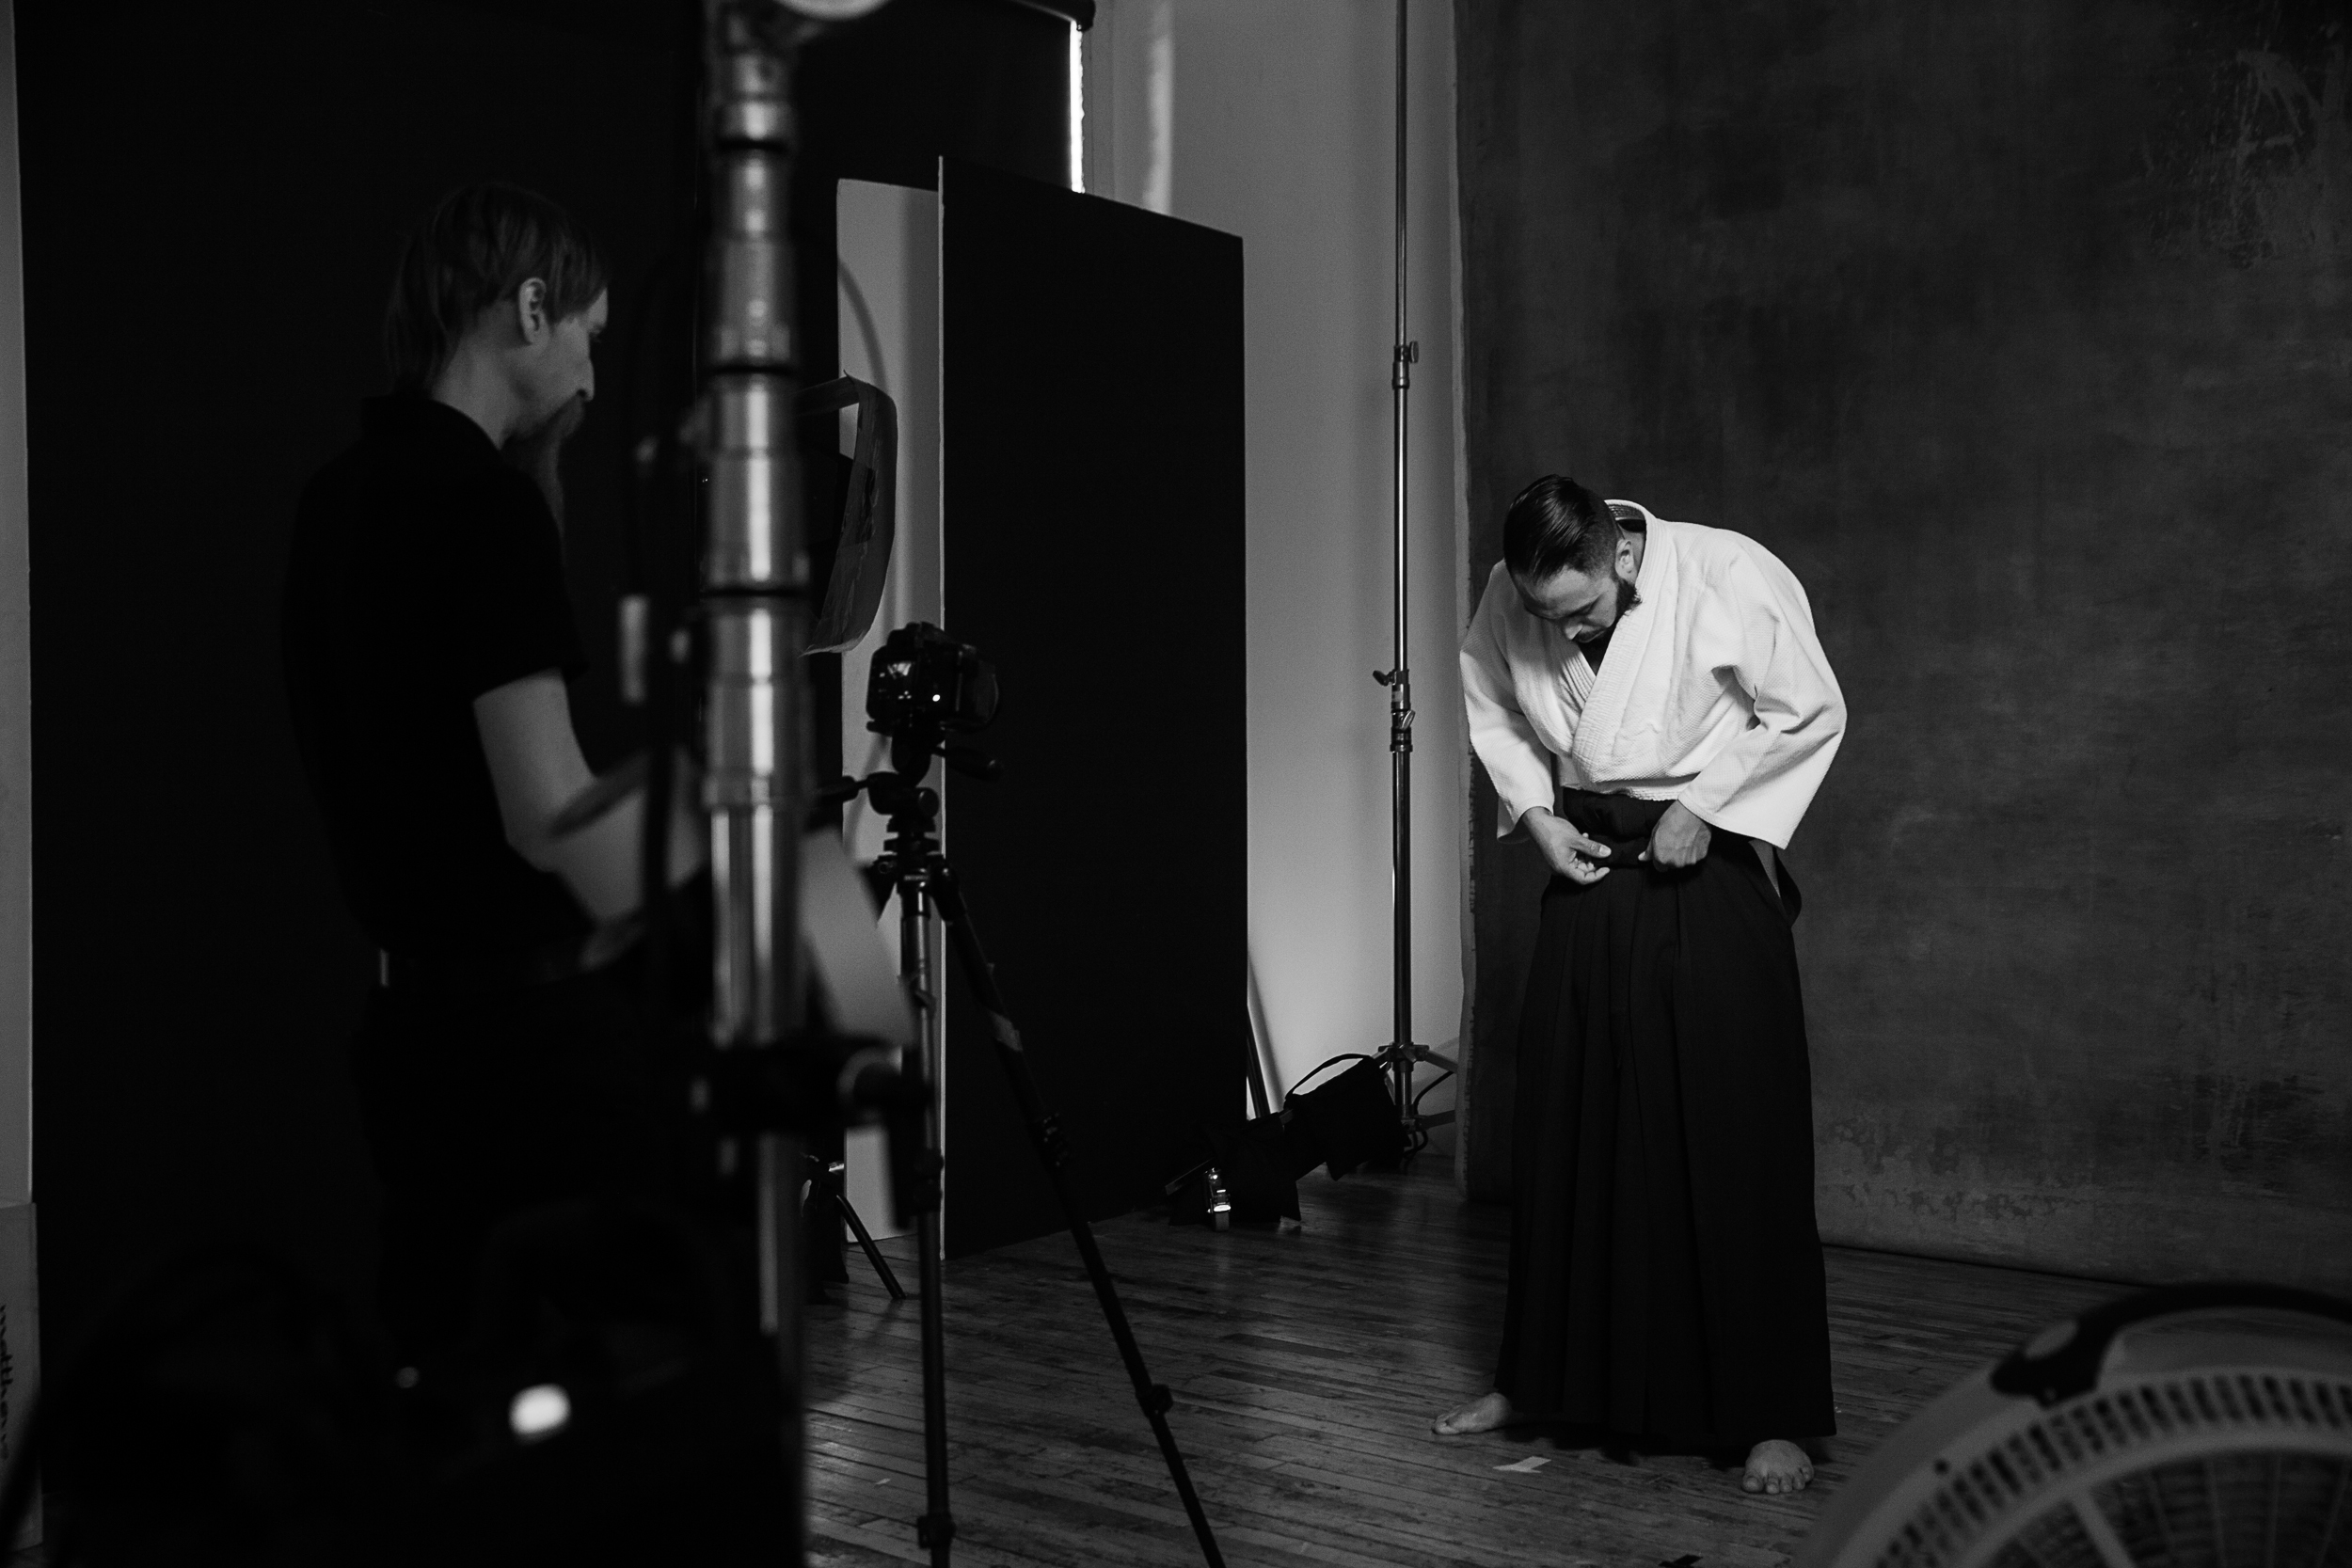 Juan Larios putting his hakama on.